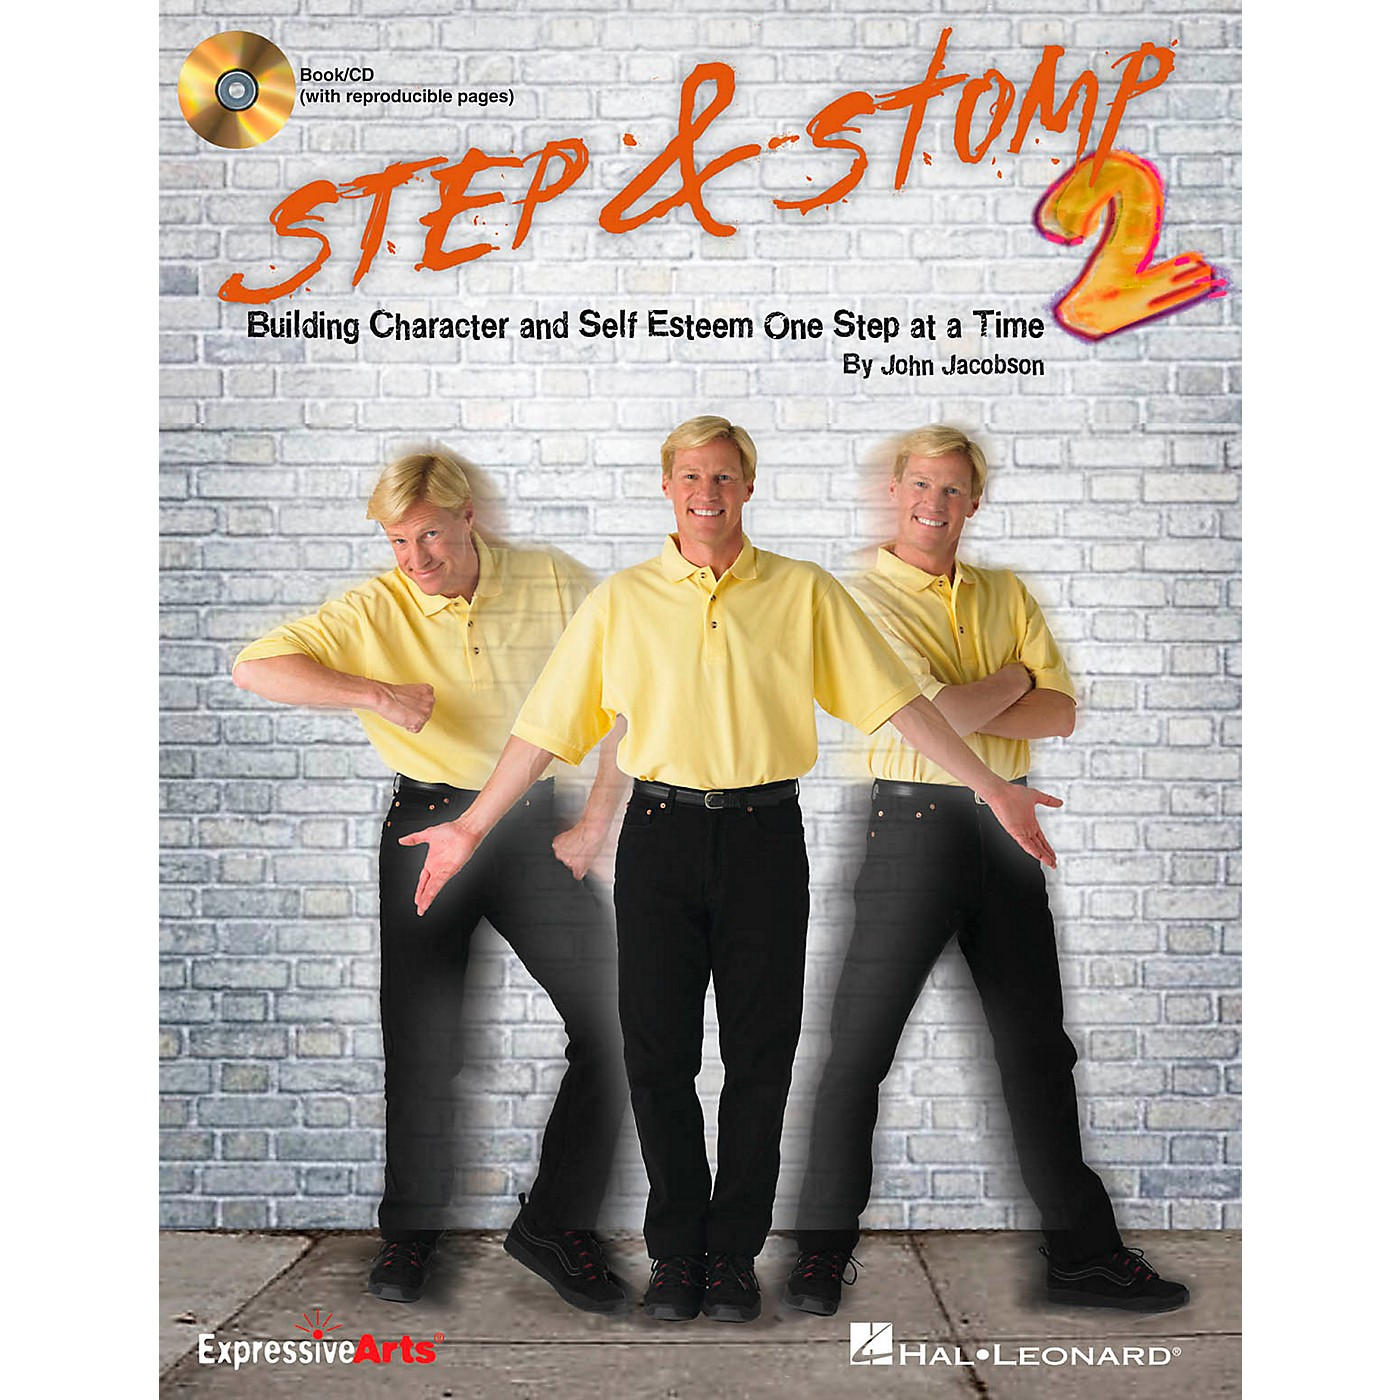 Hal Leonard Step & Stomp 2 - Building Character and Self Esteem One Step at a Time Classroom Kit thumbnail